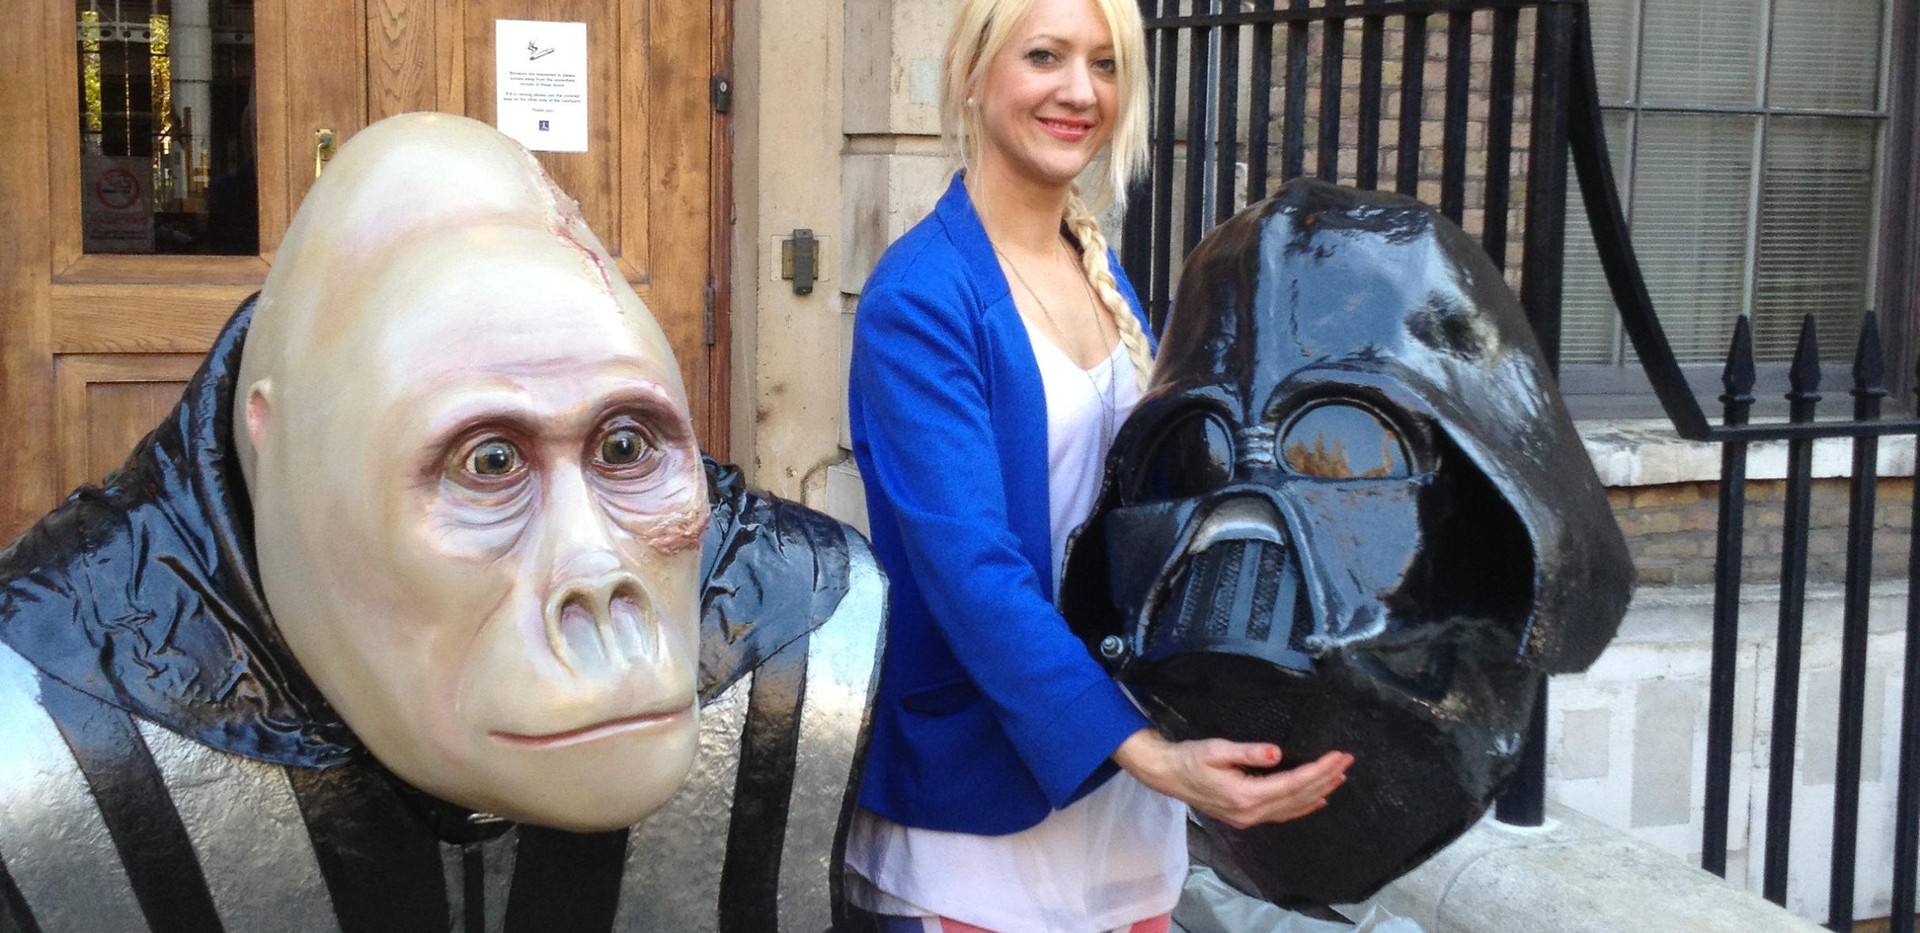 The Great Gorillas Project. Darth Vader